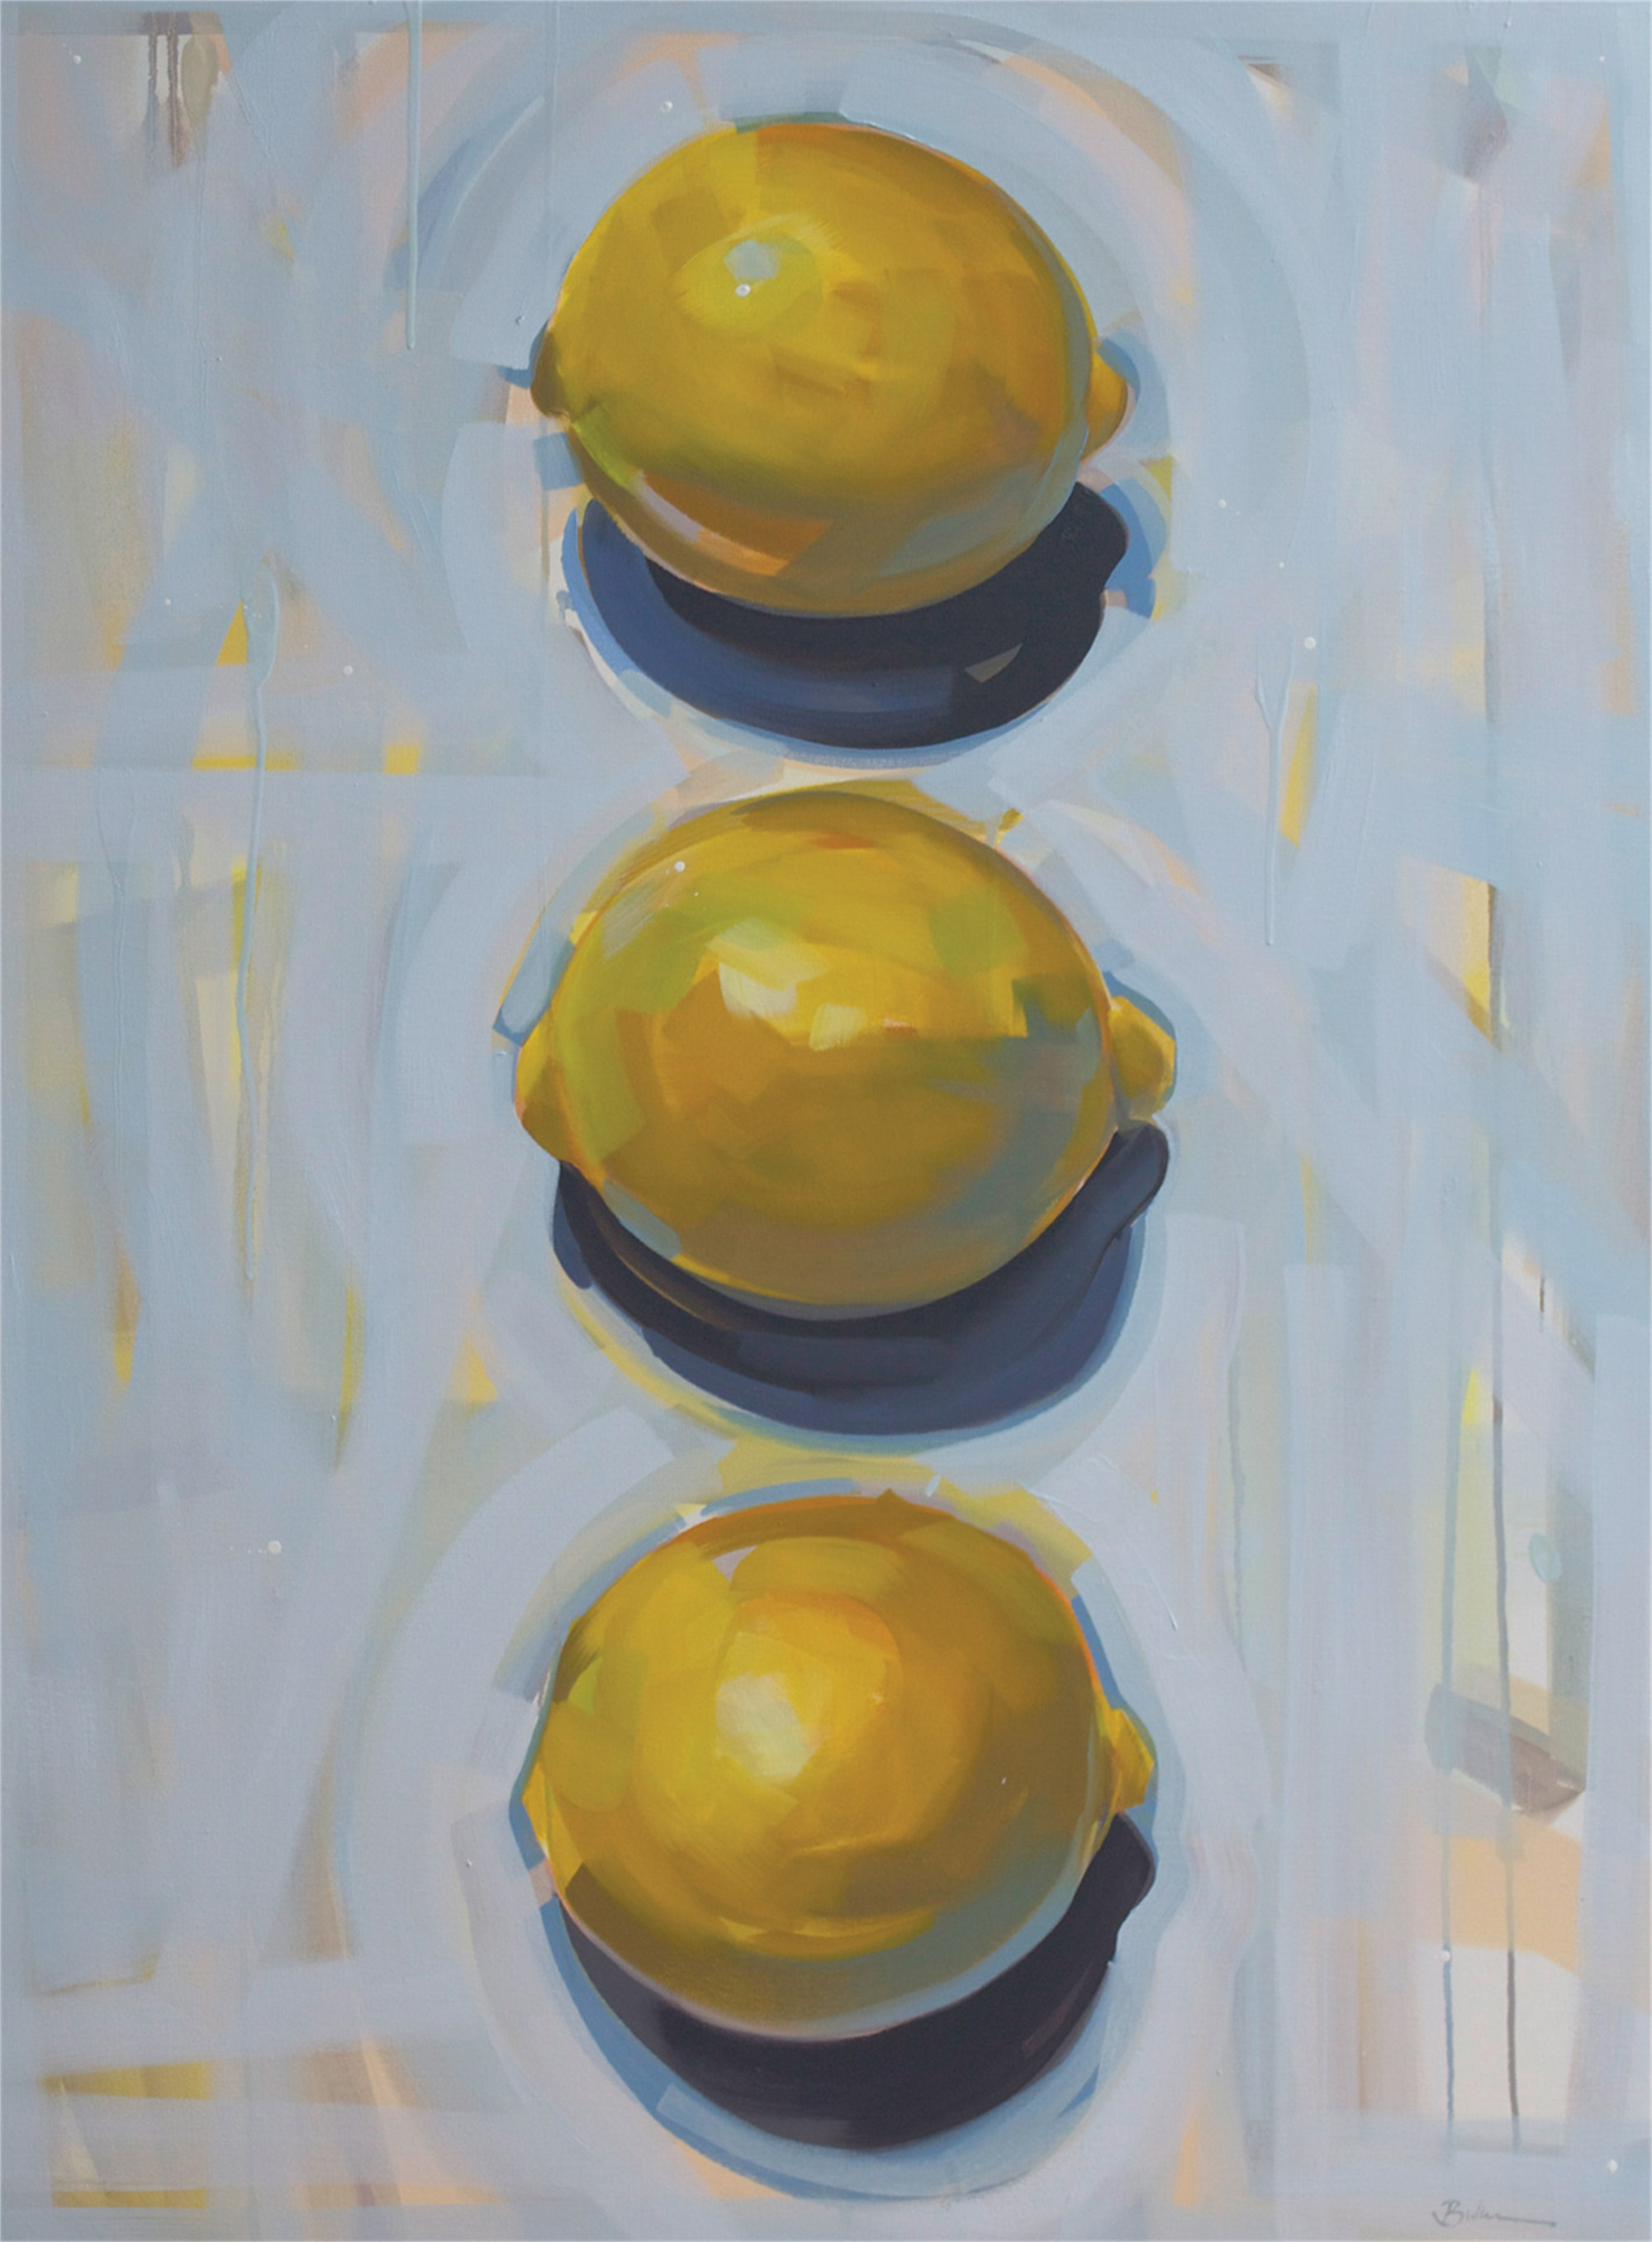 Get Your Lemons in a Row by Samantha Buller